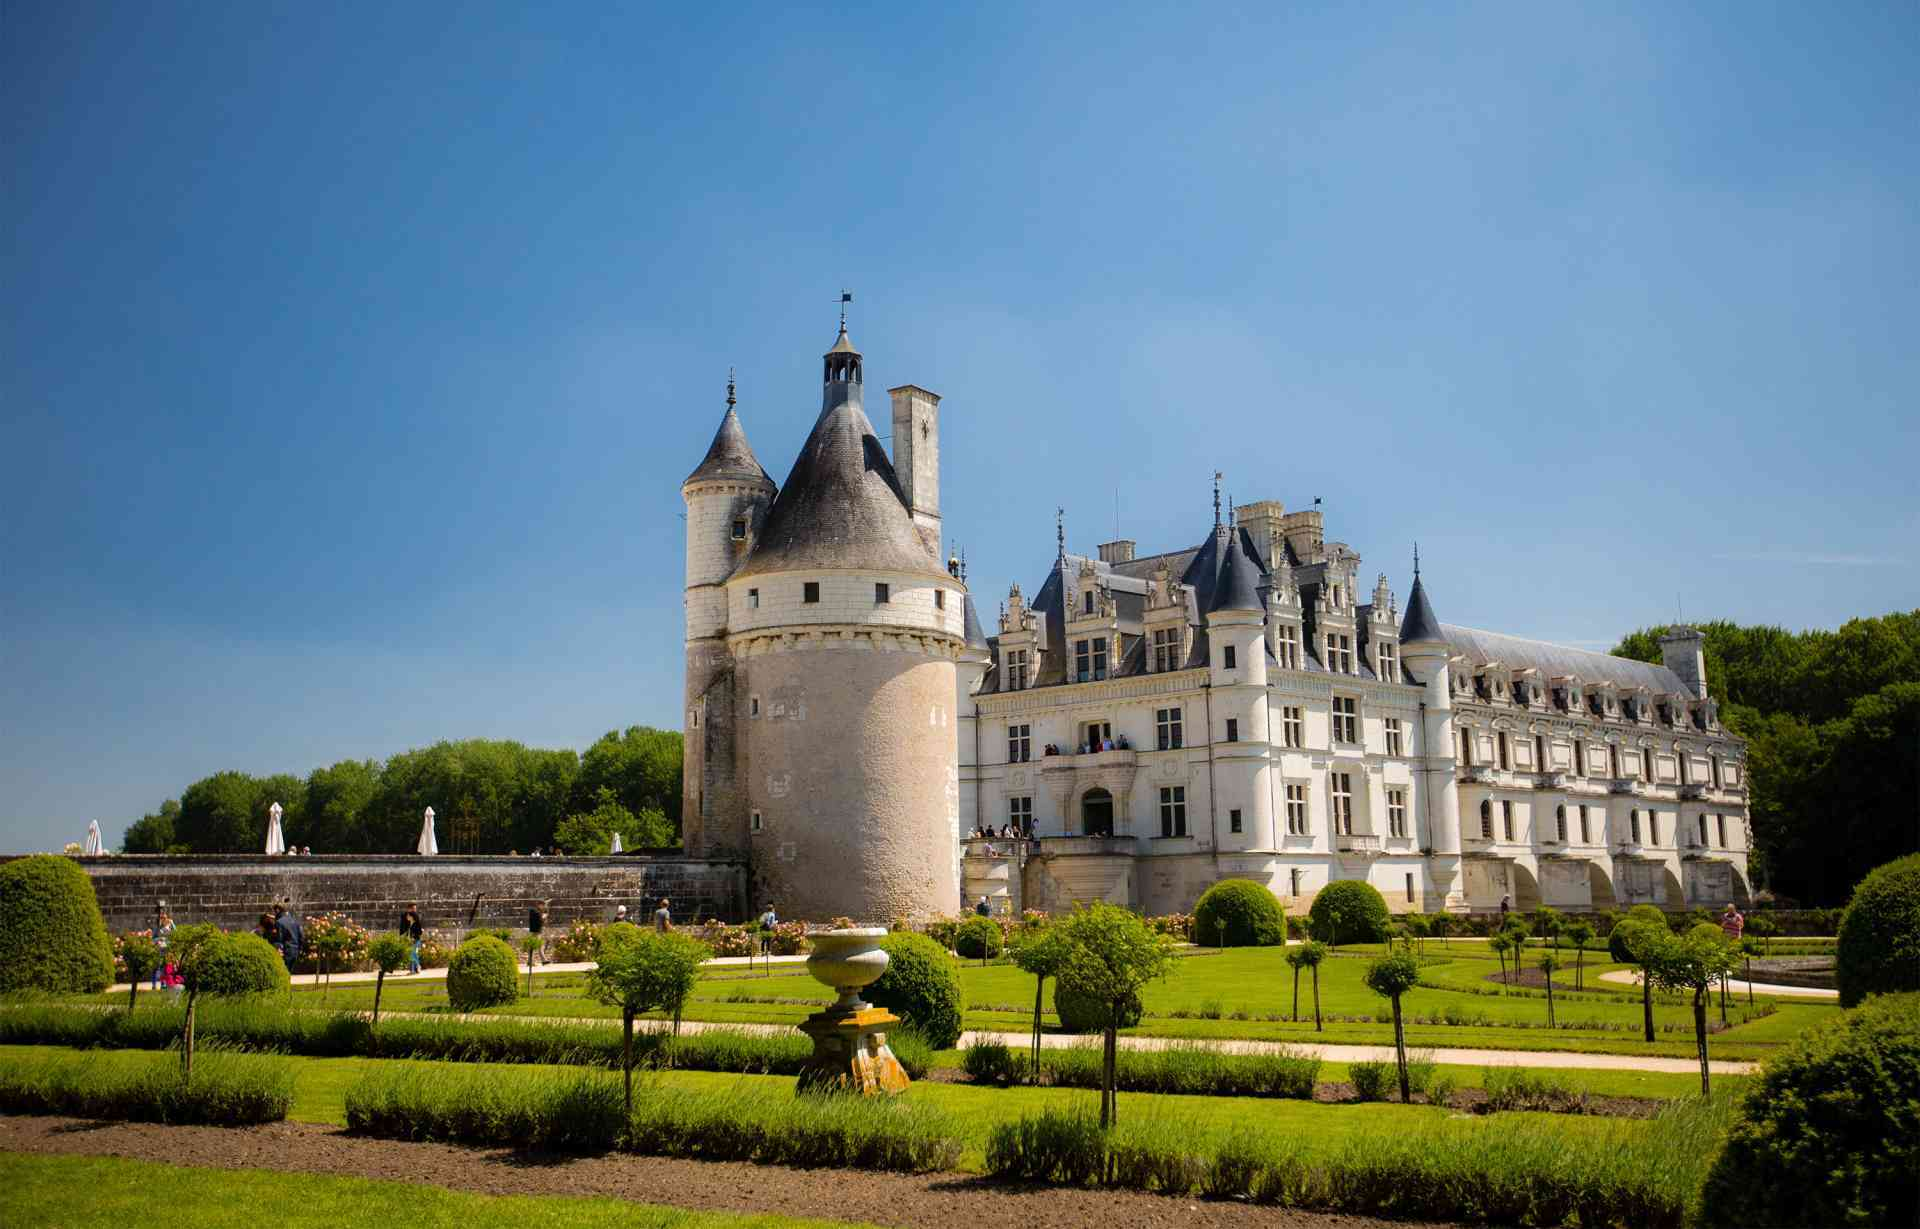 Discover the Loire Valley and its magnificent chateaux